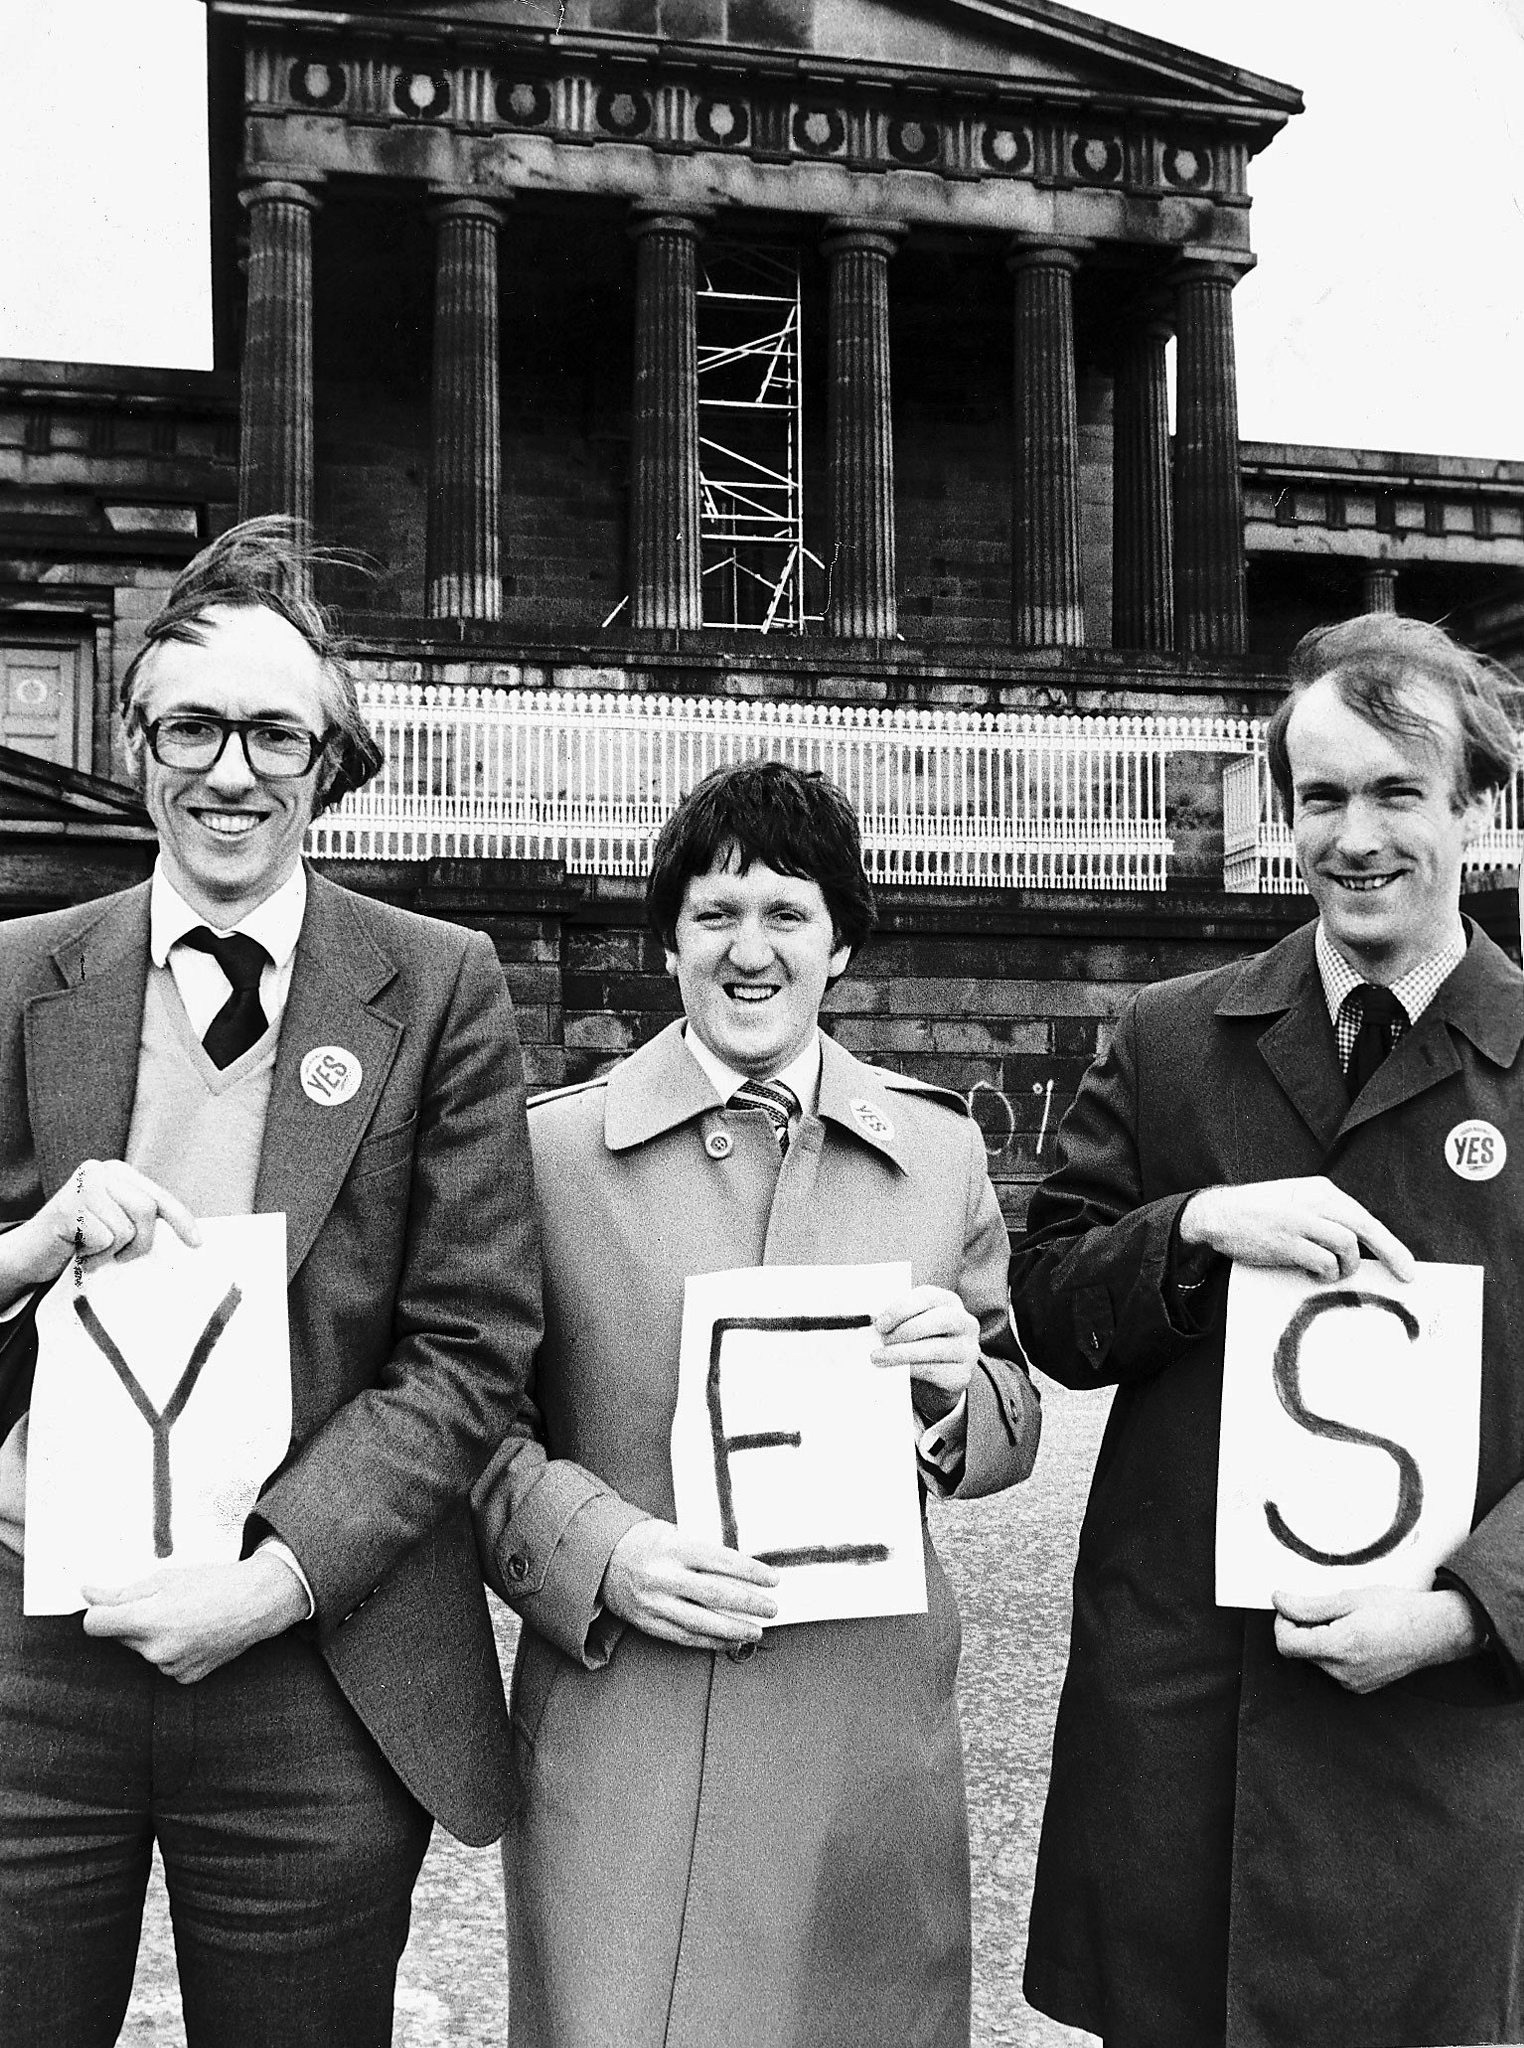 Donald Dewar, George Robertson and John Home Robertson standing outside the Royal High School Assembly building in Edinburgh campaigning for a Yes vote in the devolution referendum  of1979